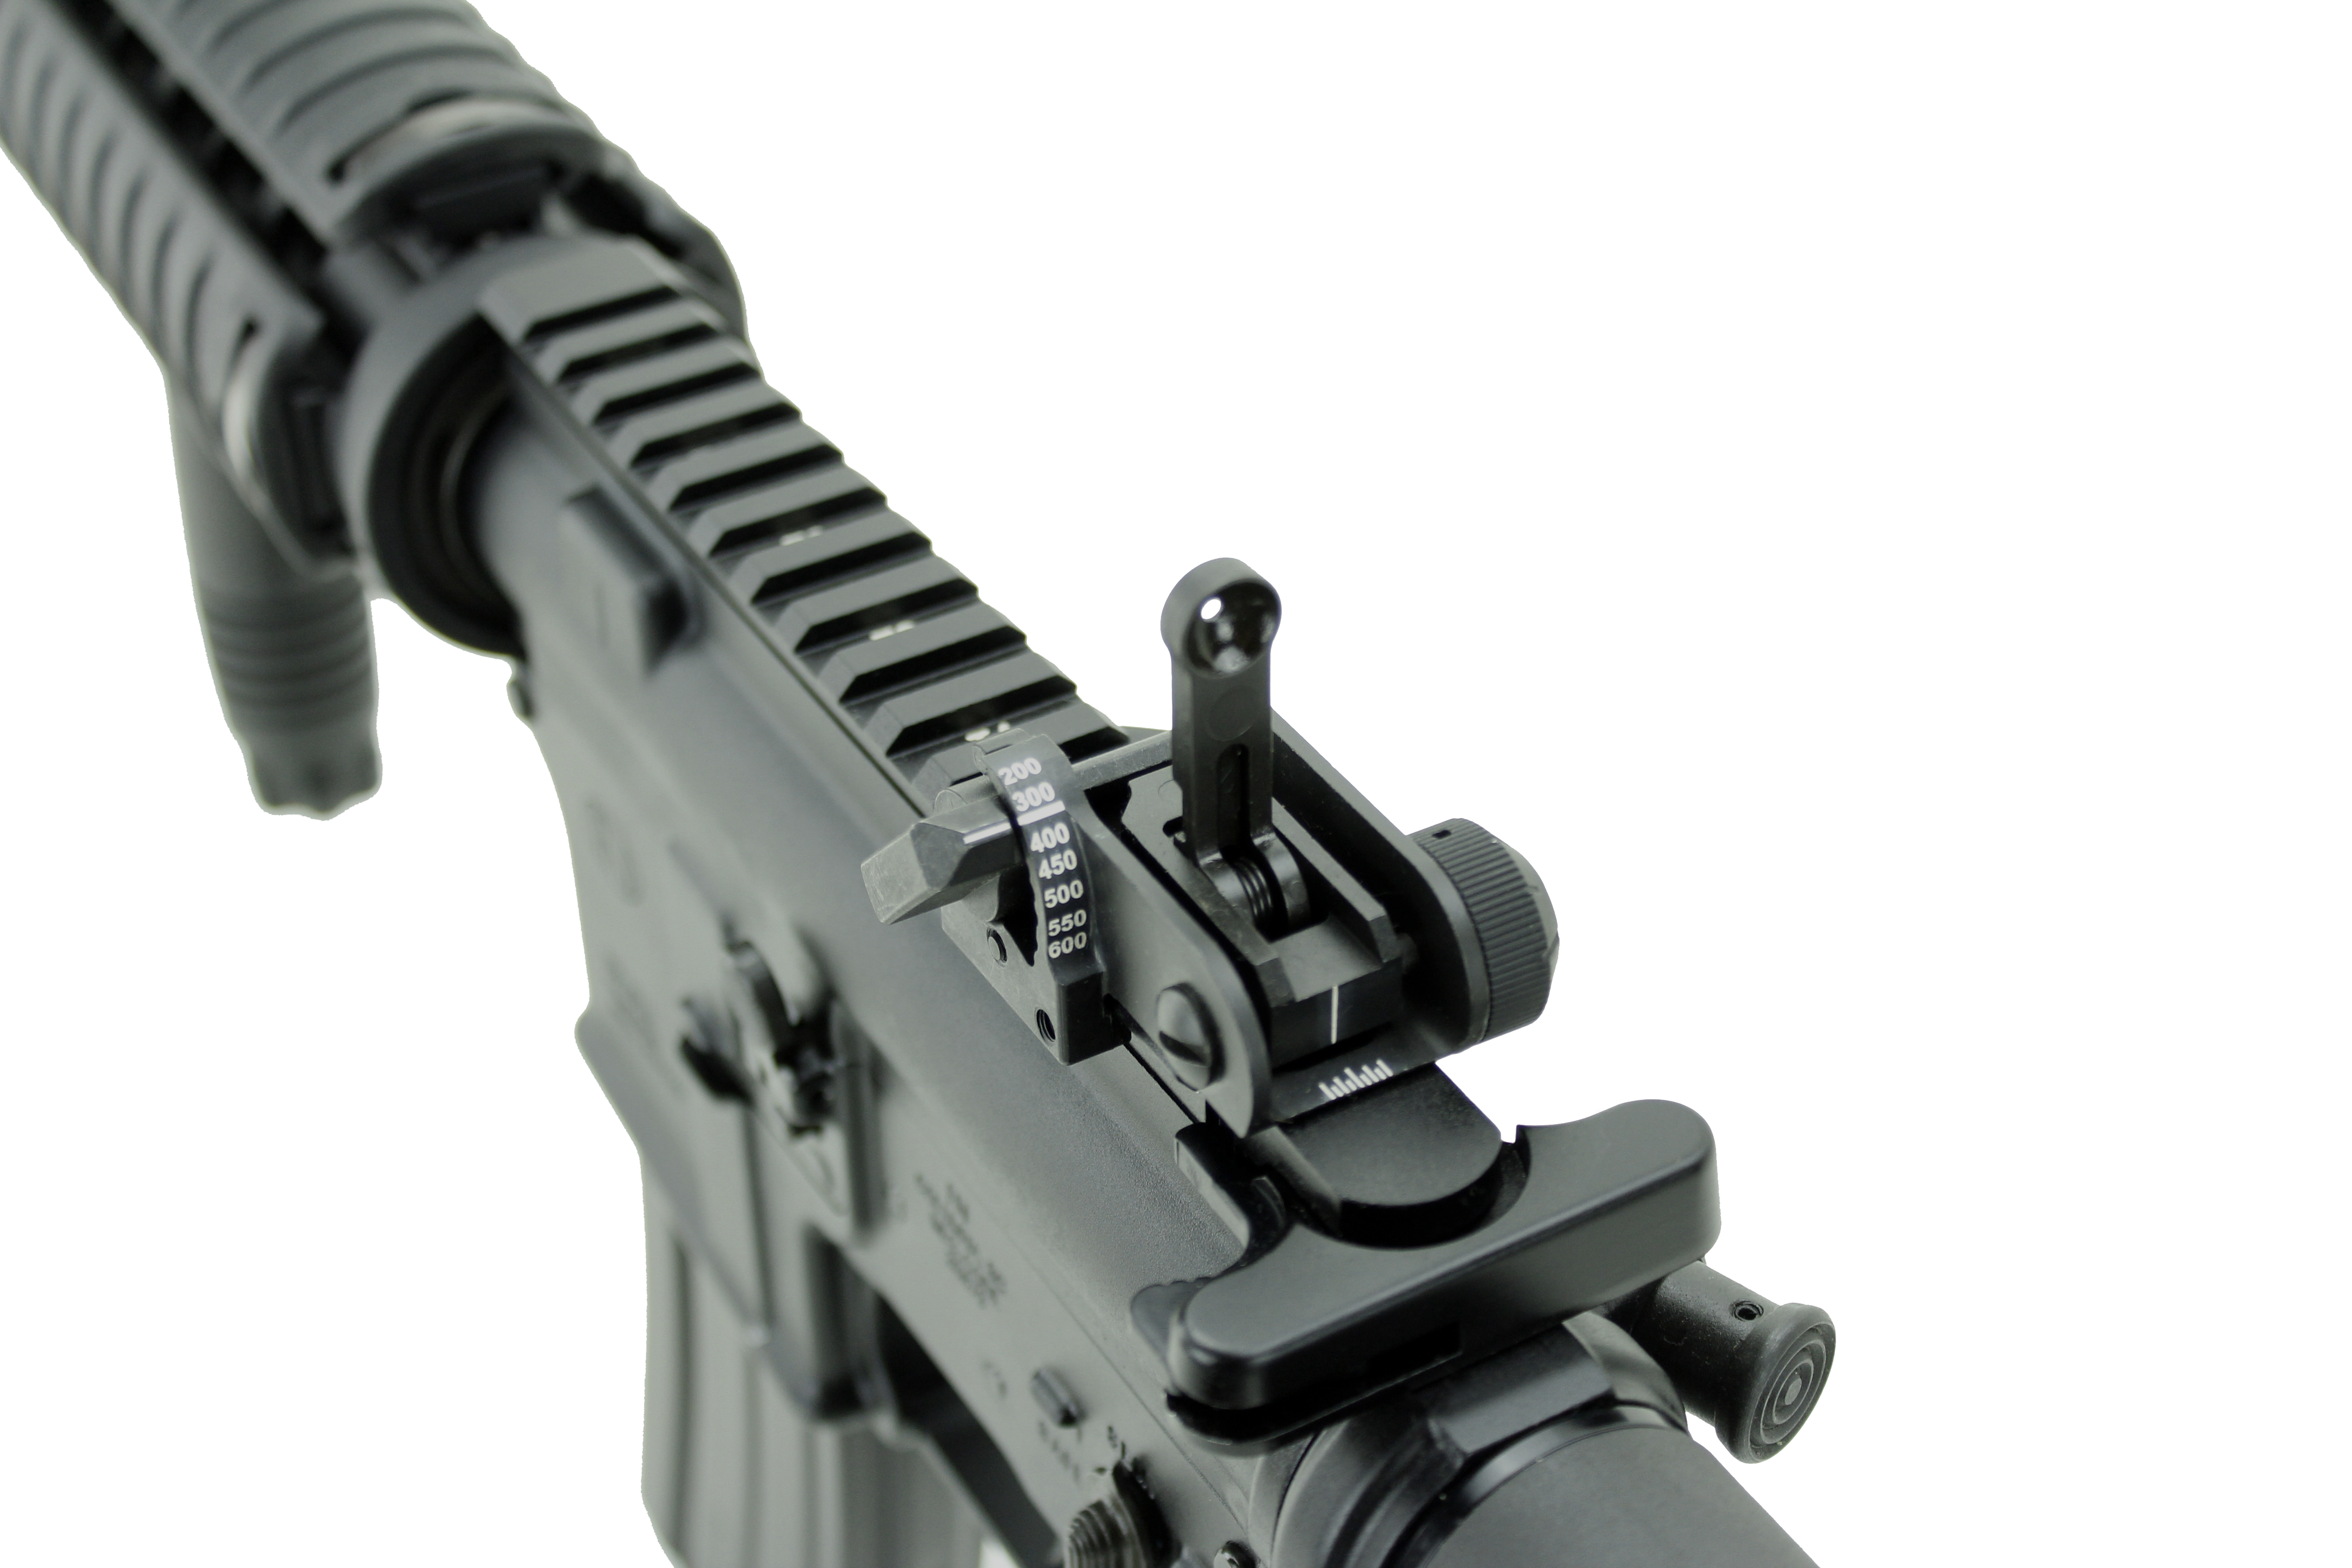 FN-AMERICA-USA-15-Military-Collector-M16-223-REM-AR15-5-56-Fabrique-Nationale-Herstal-36320